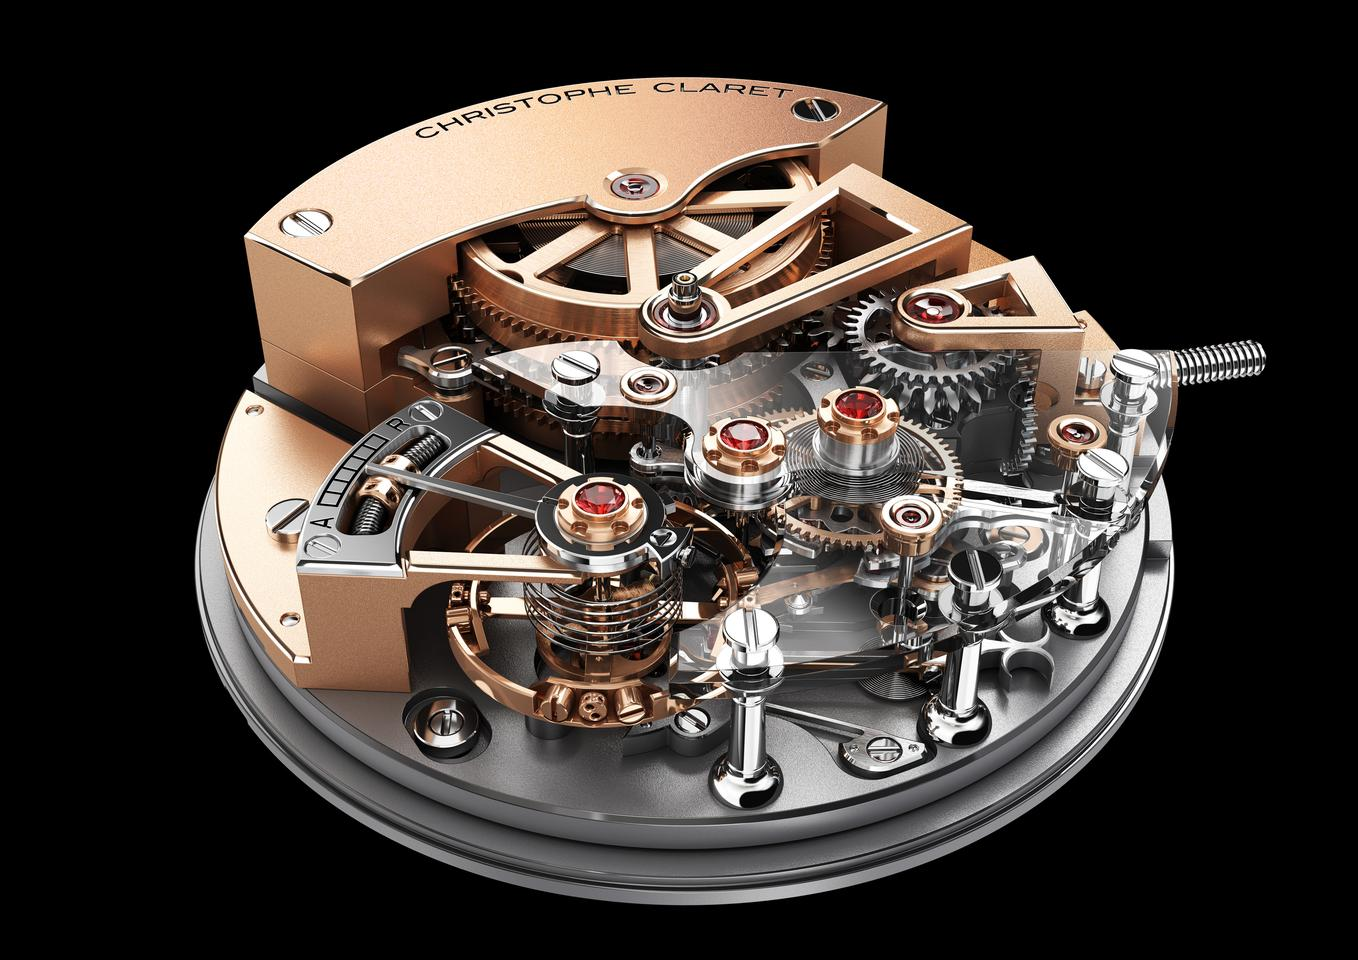 The Christophe Claret Maestoso movement